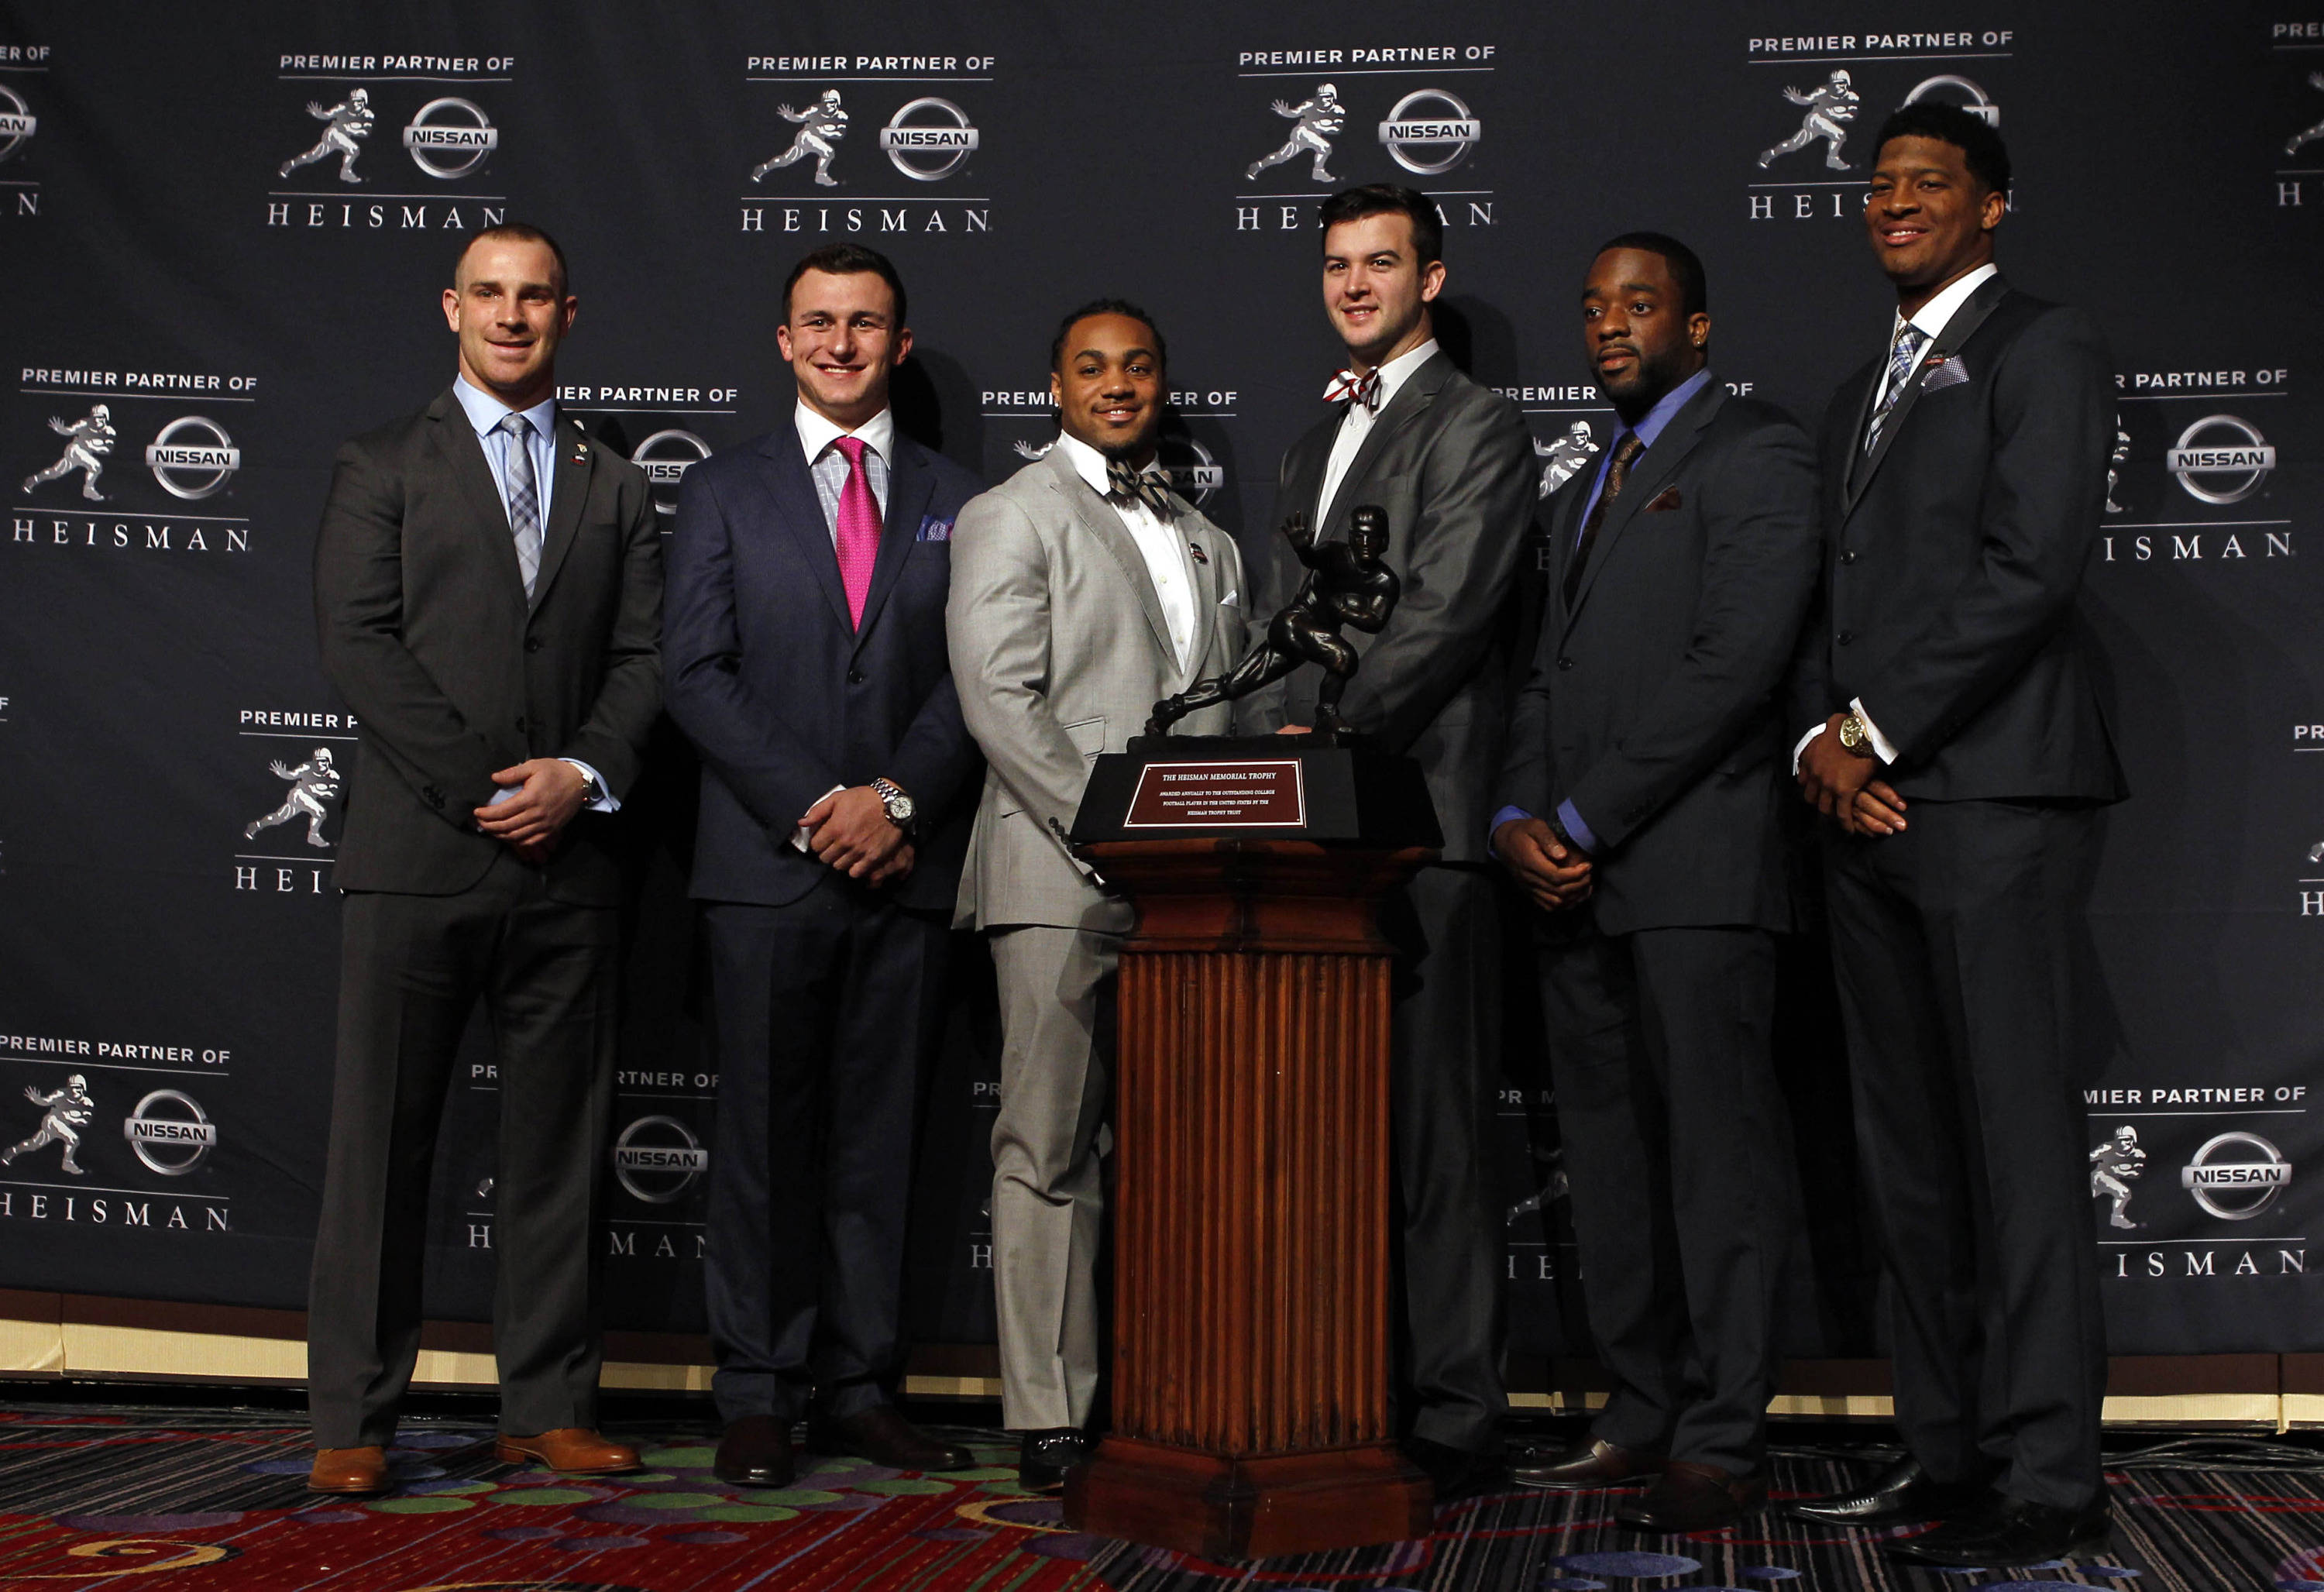 Dec 14, 2013; New York, NY, USA; (From left to right) Northern Illinois Huskies quarterback Jordan Lynch, and Texas A&M Aggies quarterback Johnny Manziel, and Auburn Tigers running back Tre Mason, and Alabama Crimson Tide quarterback AJ McCarron, and Boston College Eagles running back Andre Williams and Seminoles quarterback Jameis Winston pose for a photo with the Heisman Trophy during a press conference before the announcement of the 2013 Heisman Trophy winner at the Marriott Marquis in New Yo